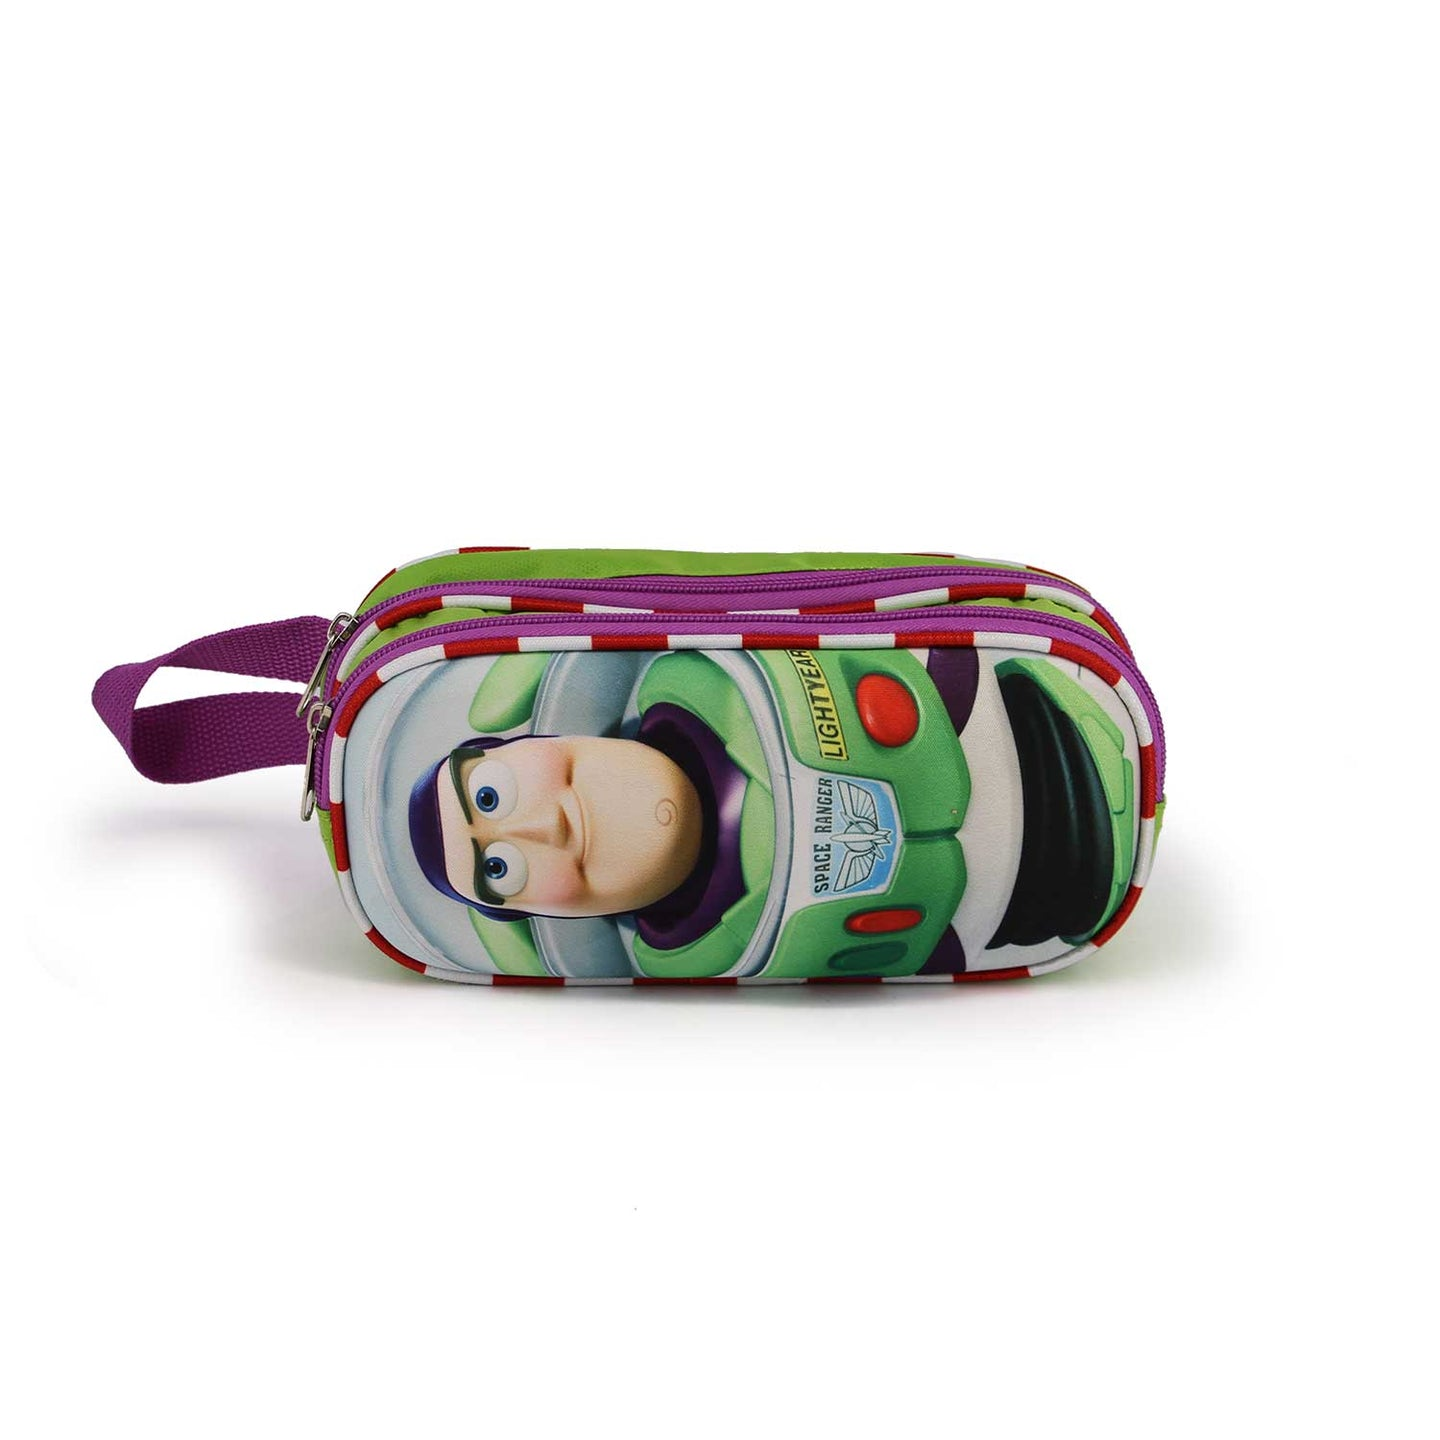 Toy-Story-Estuche-Portatodo-Doble-3D-Buzz-Lightyear-Vista-Frontal